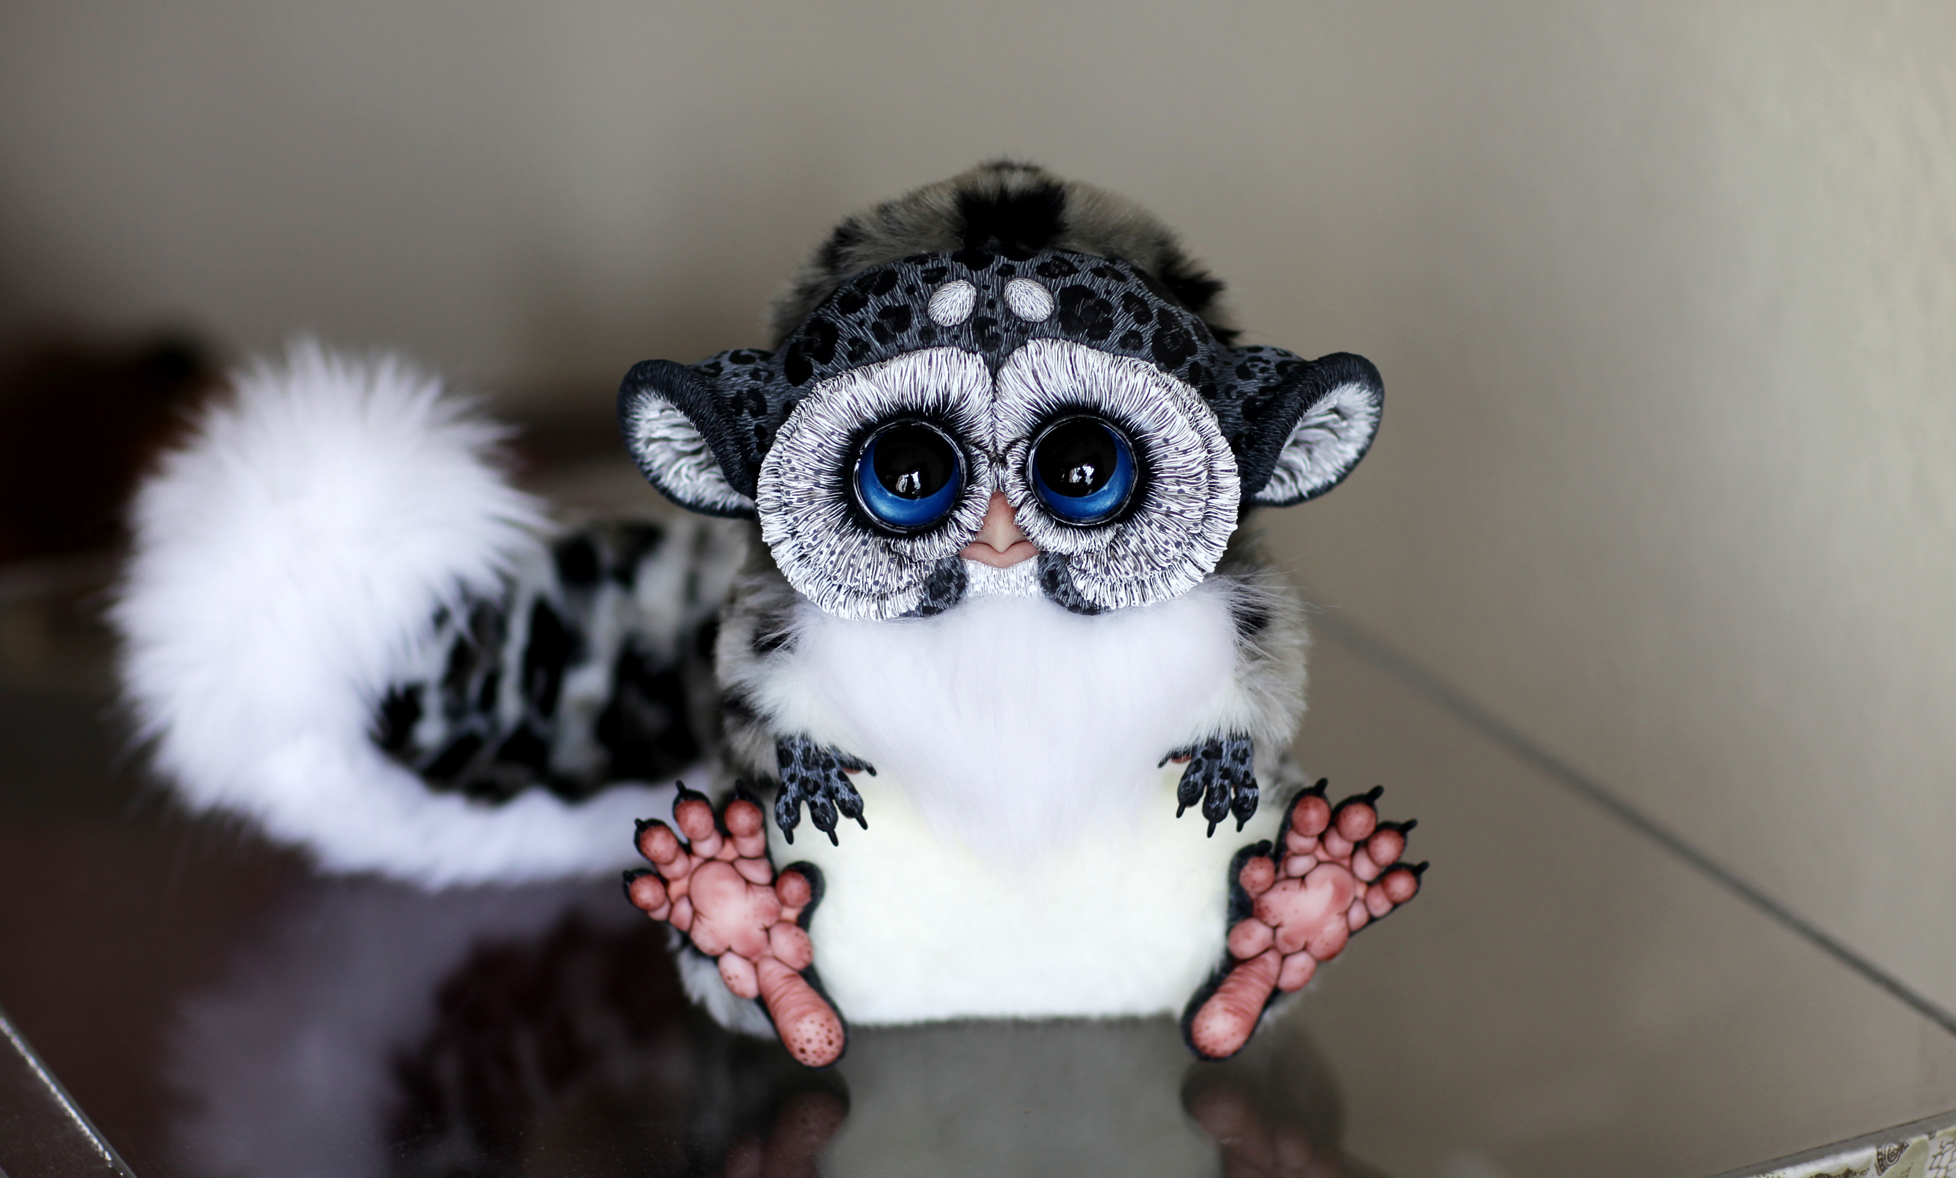 """""""The artist has completely mastered the power of cute. It's amazing how incredibly detailed they are.. These colorful creatures look like they could be the cuter cousins of the gremlins in Speilberg's 1984 movie of the same name..,"""" the media said."""